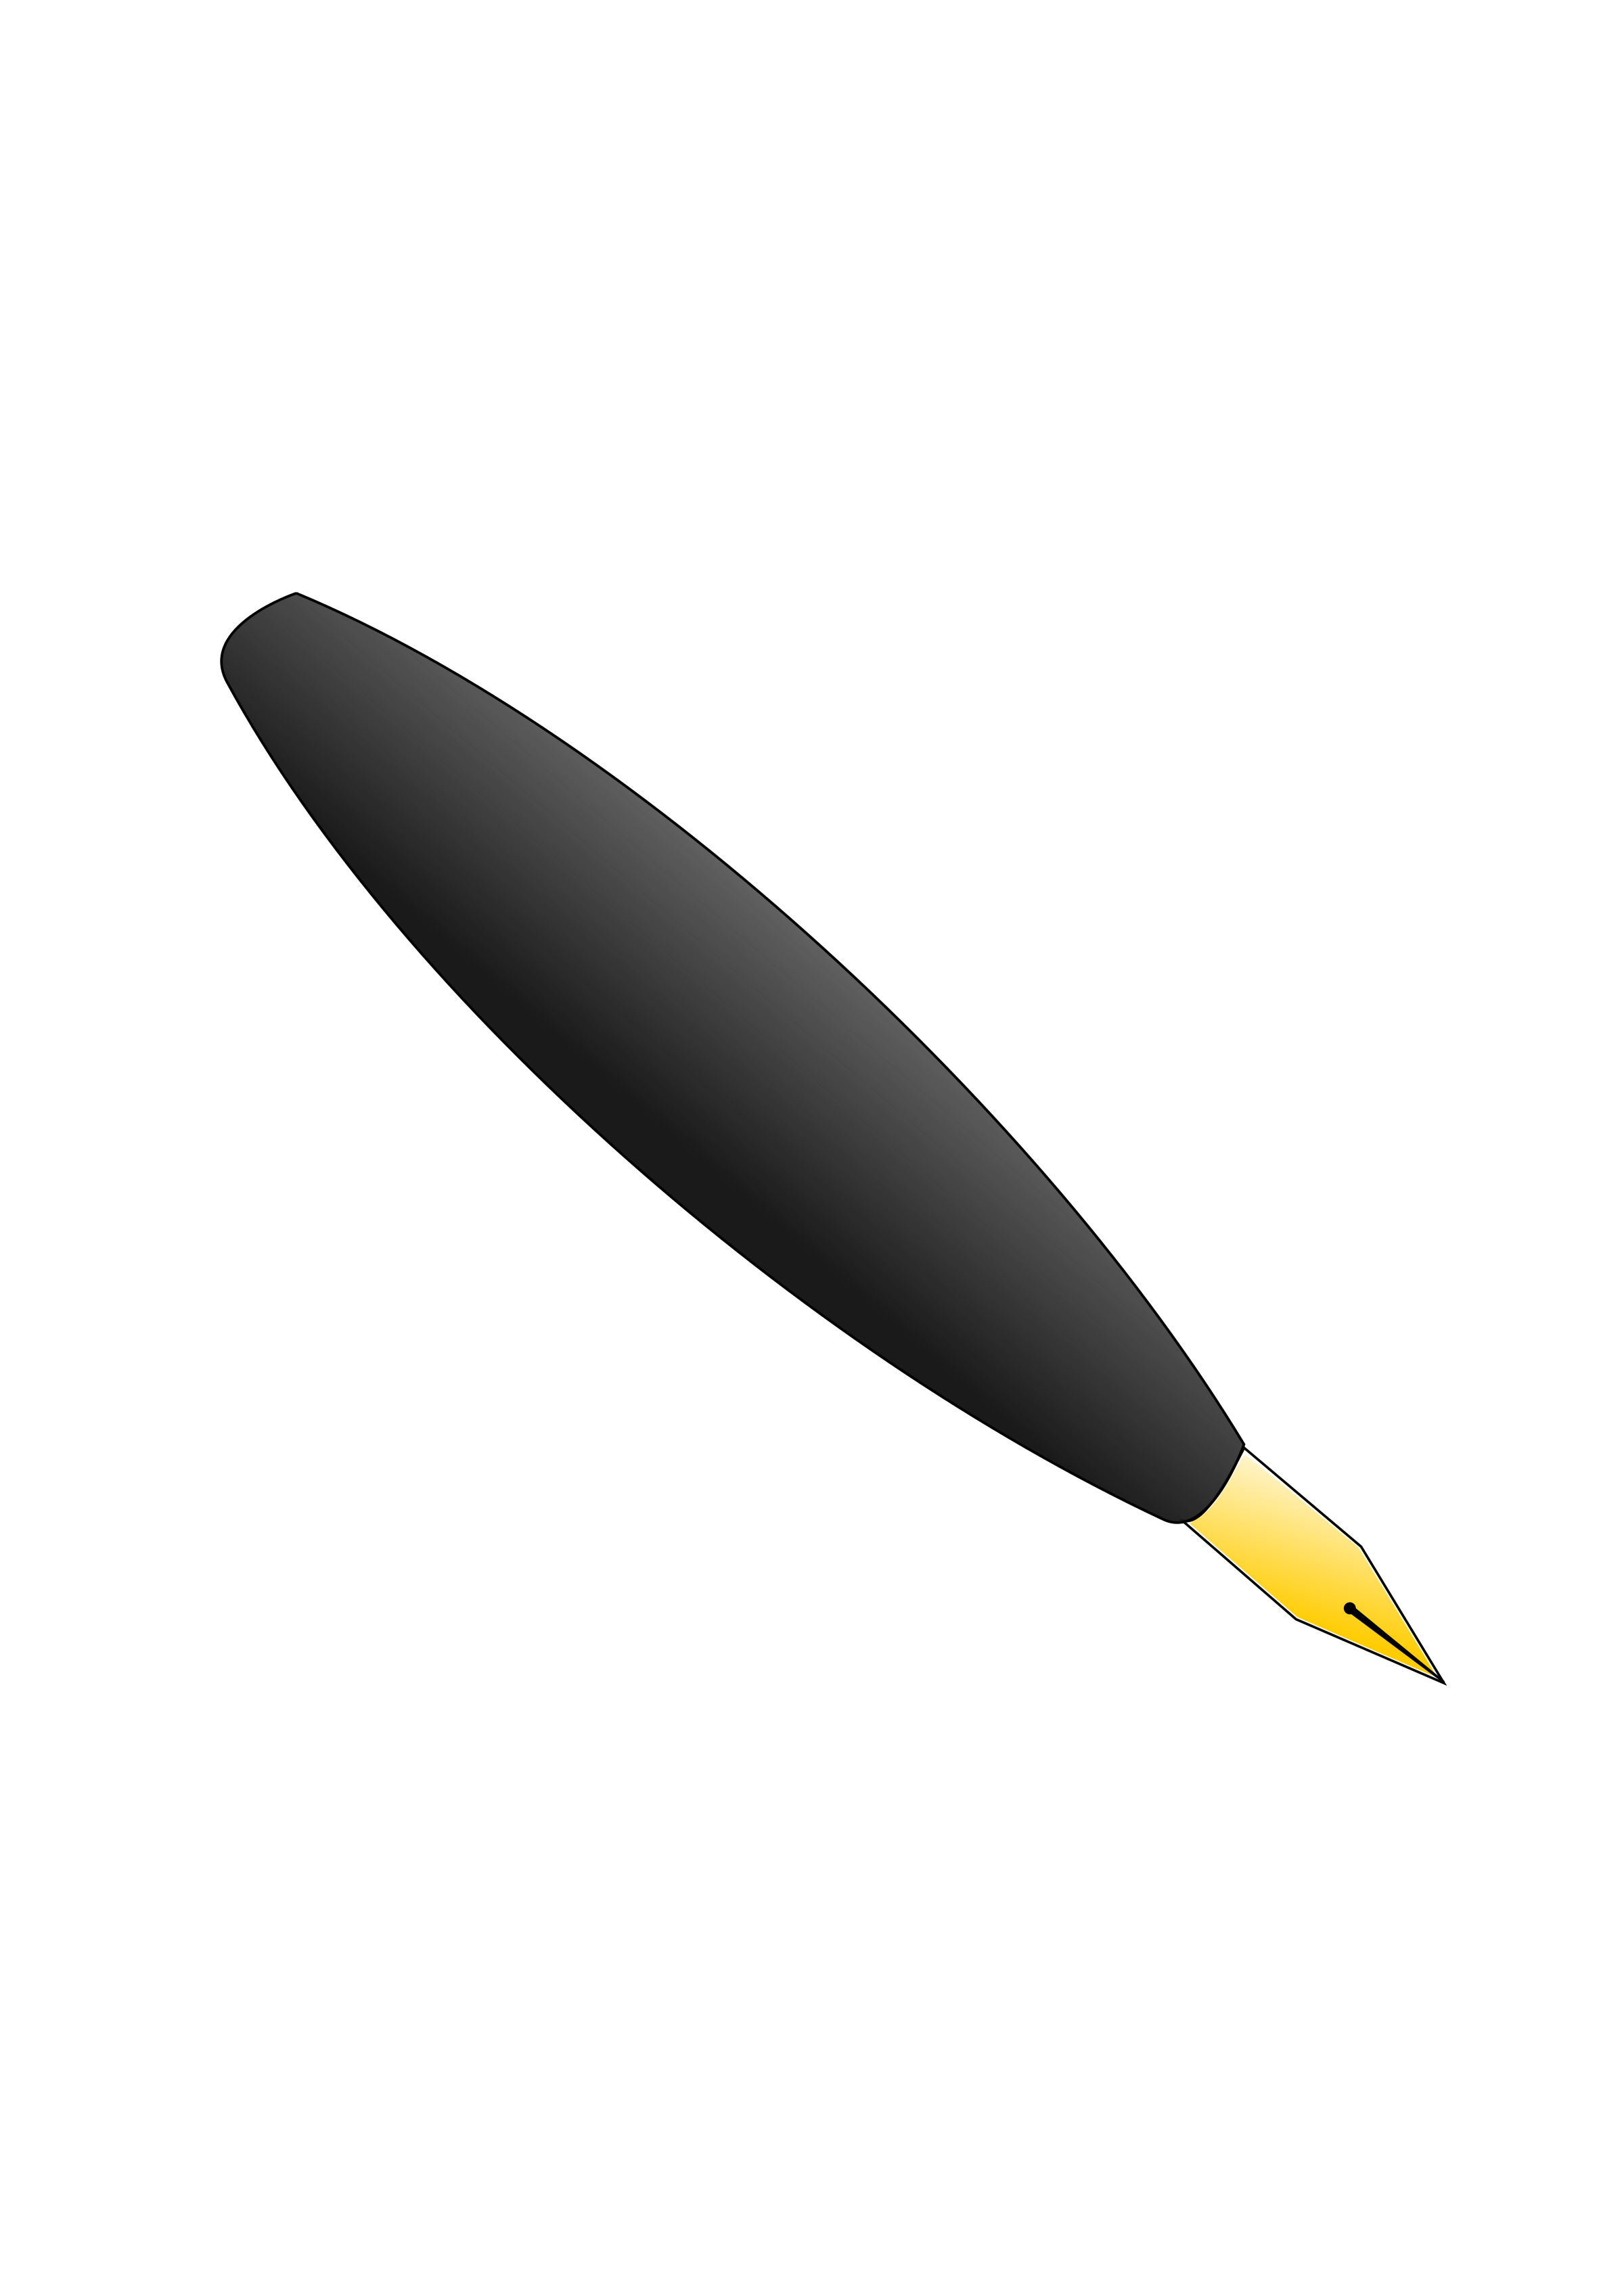 Simple Pen by mbybee